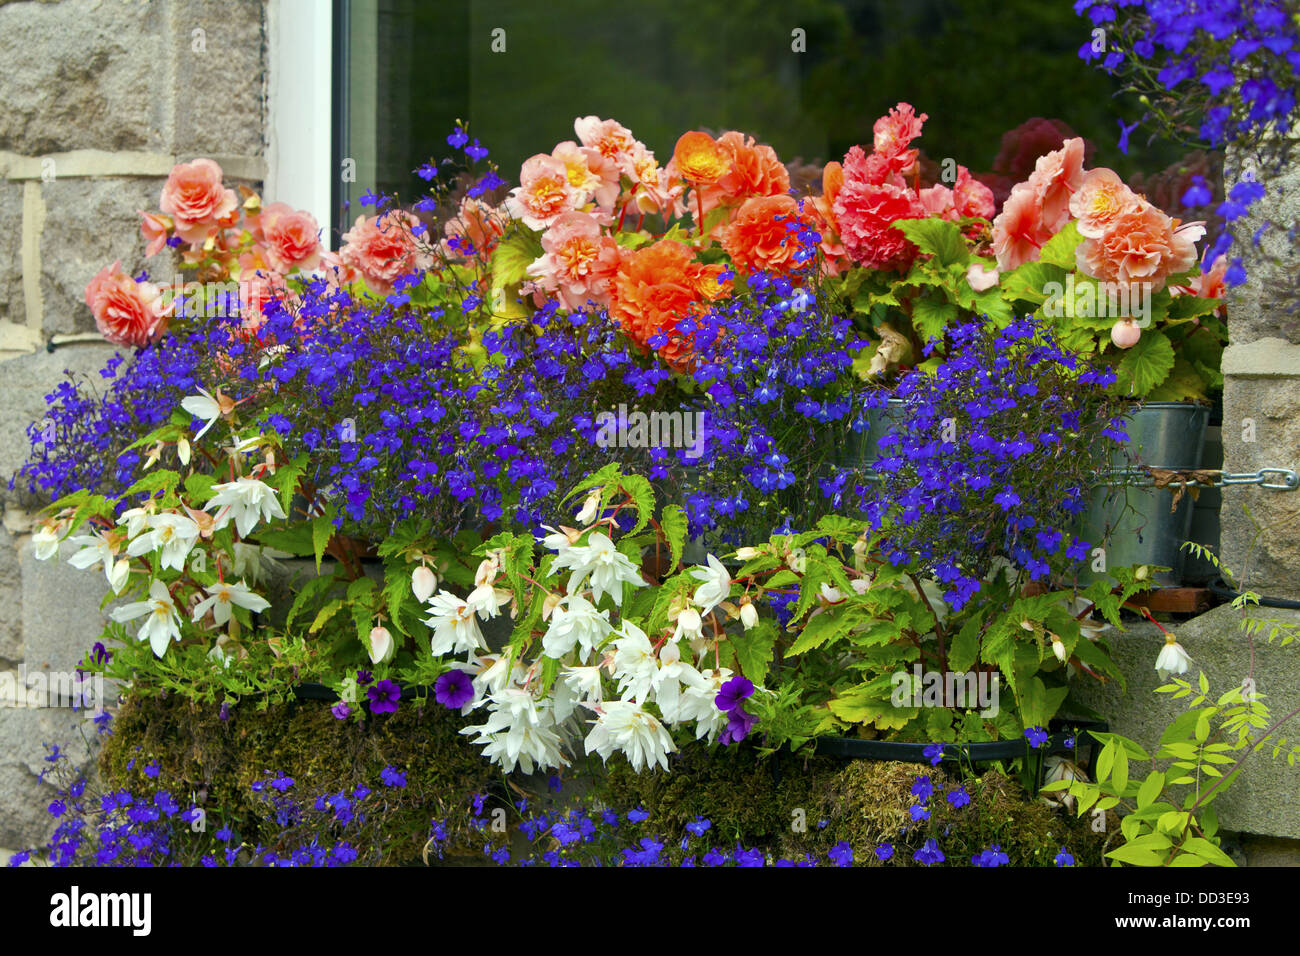 Pink, blue and white trailing flowers in a window box of an old English stone house. - Stock Image